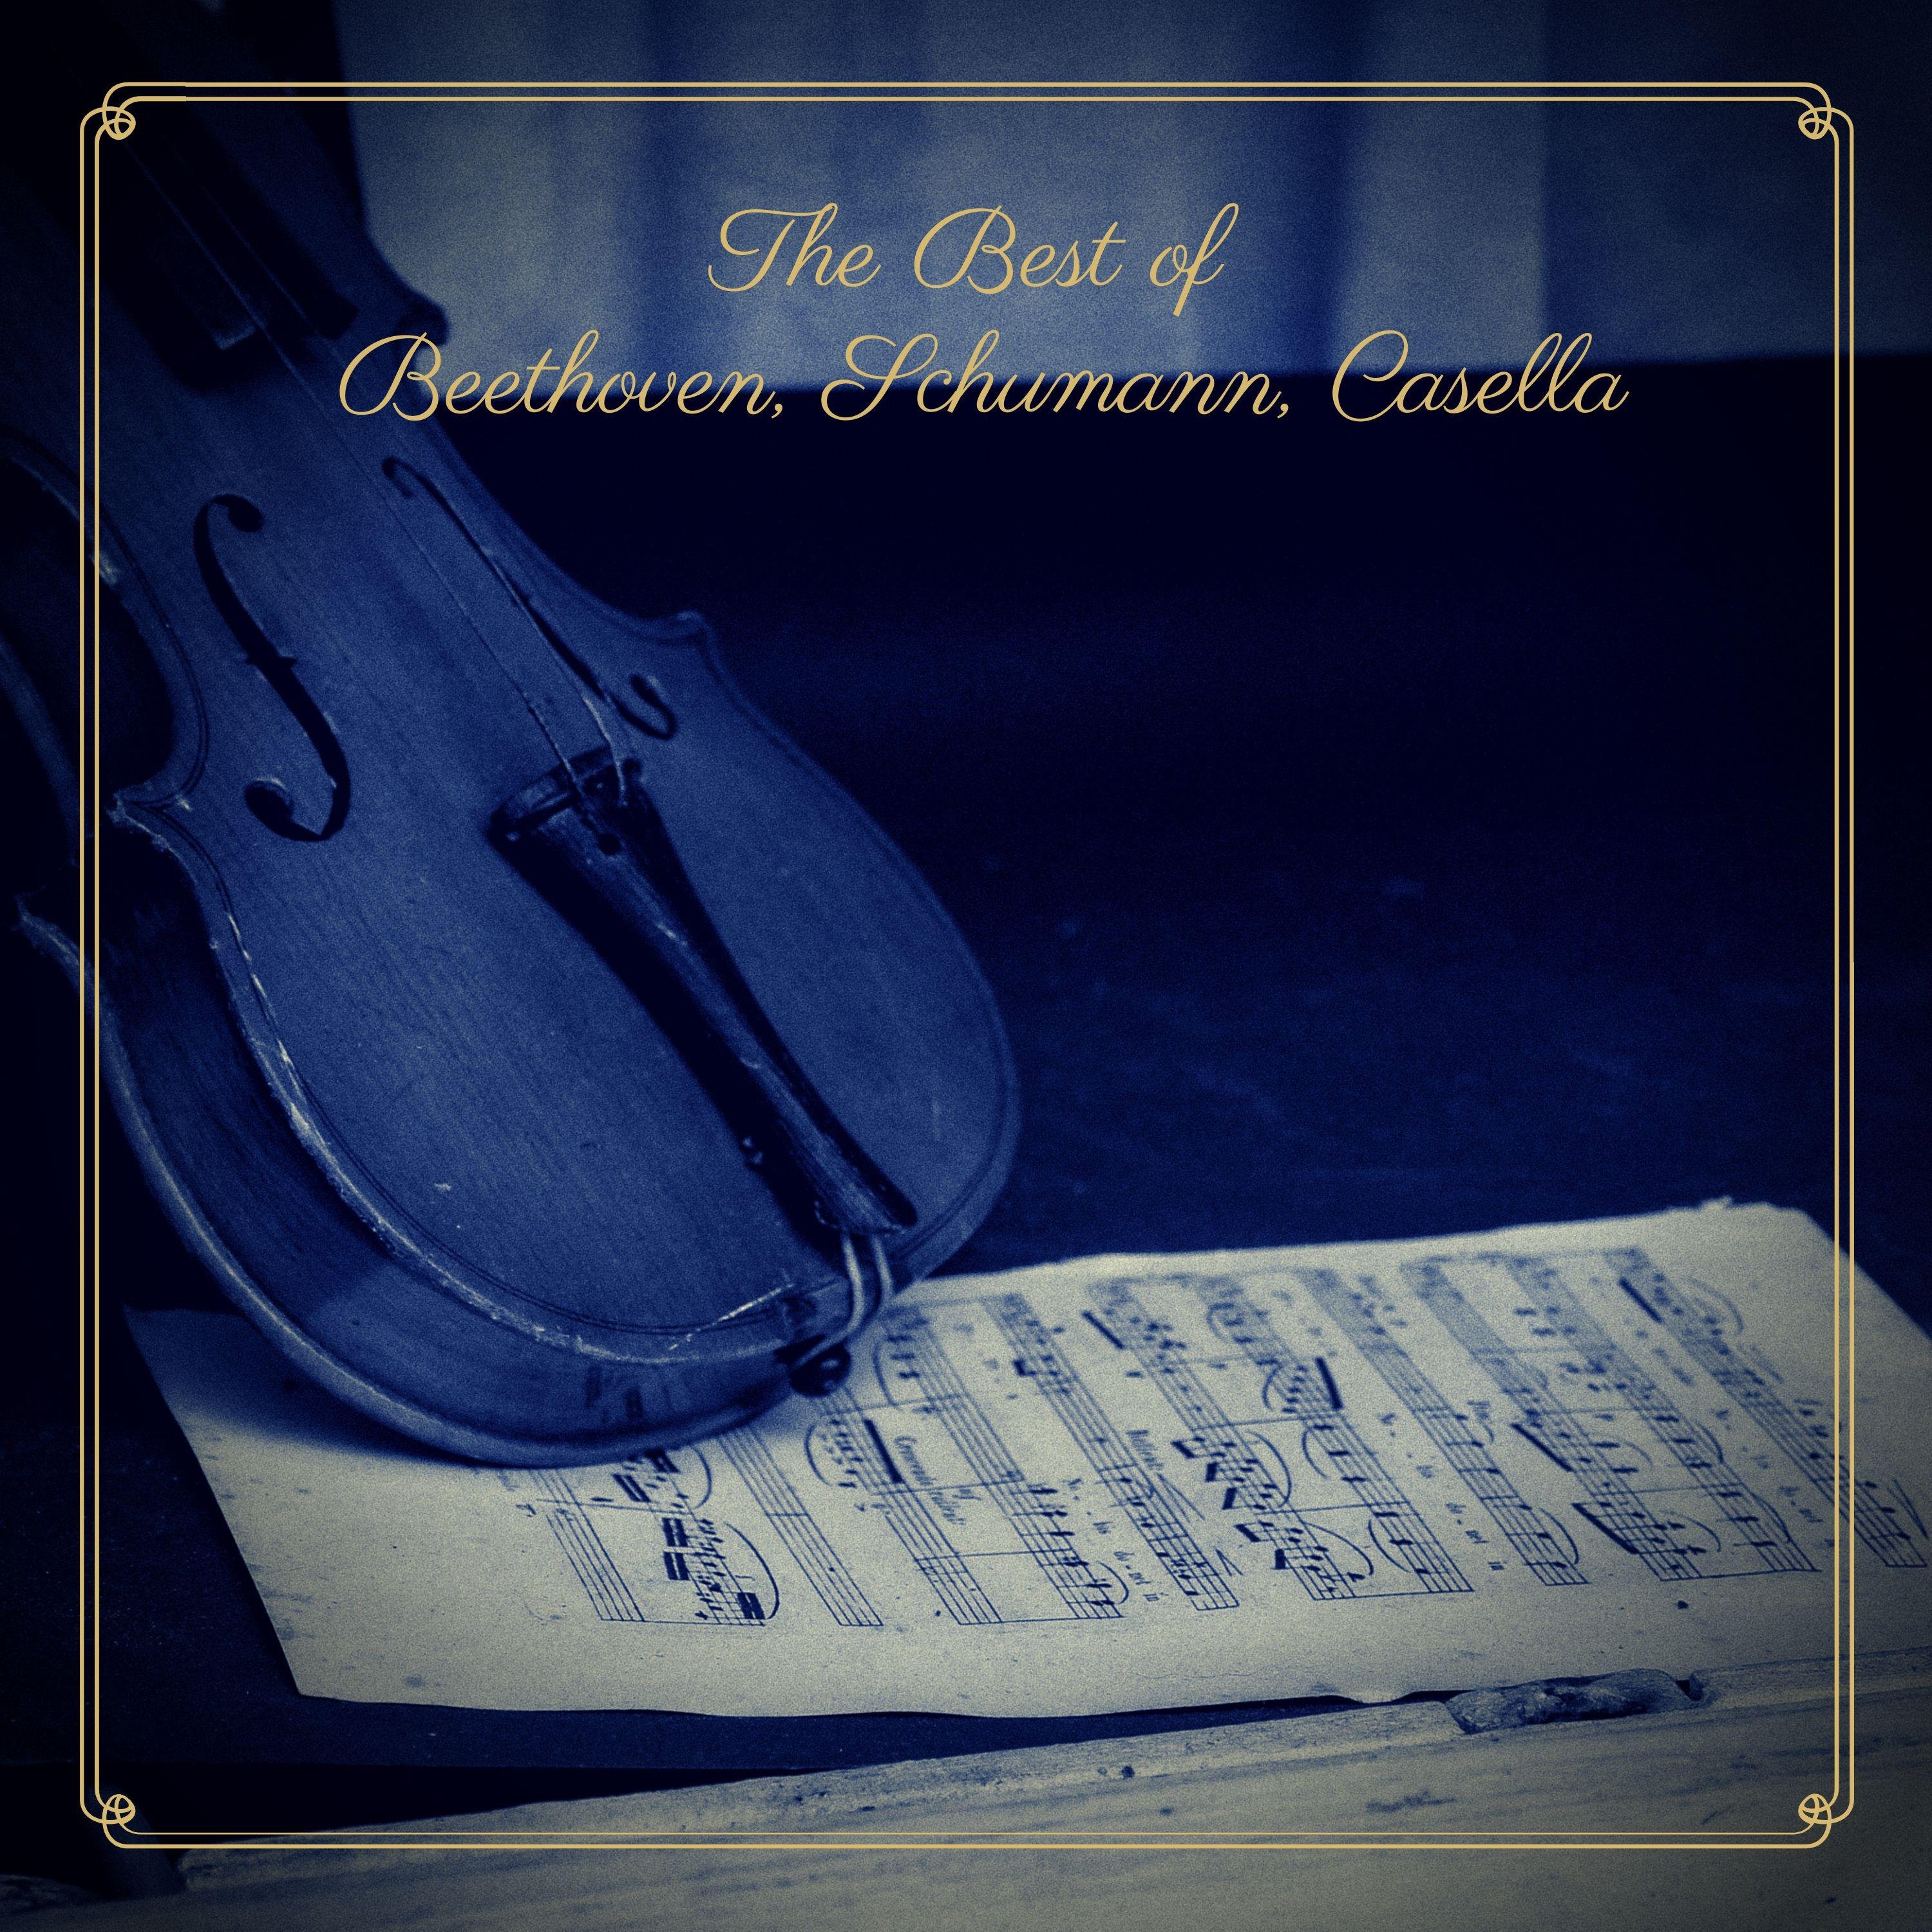 The Best of Beethoven, Schumann, Casella